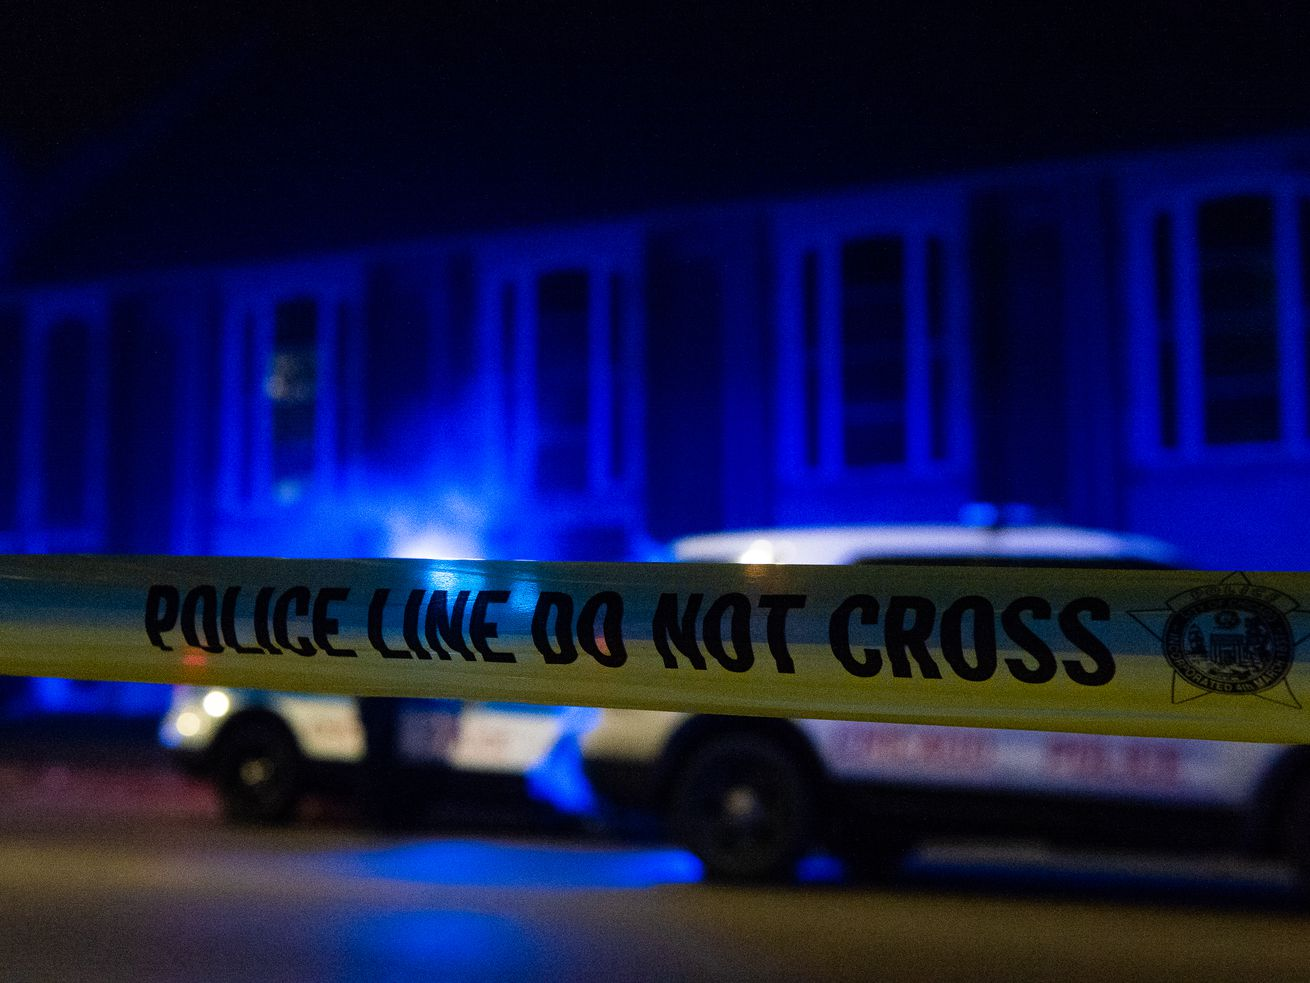 Two women were shot, one fatally, July 25, 2020 in South Shore.